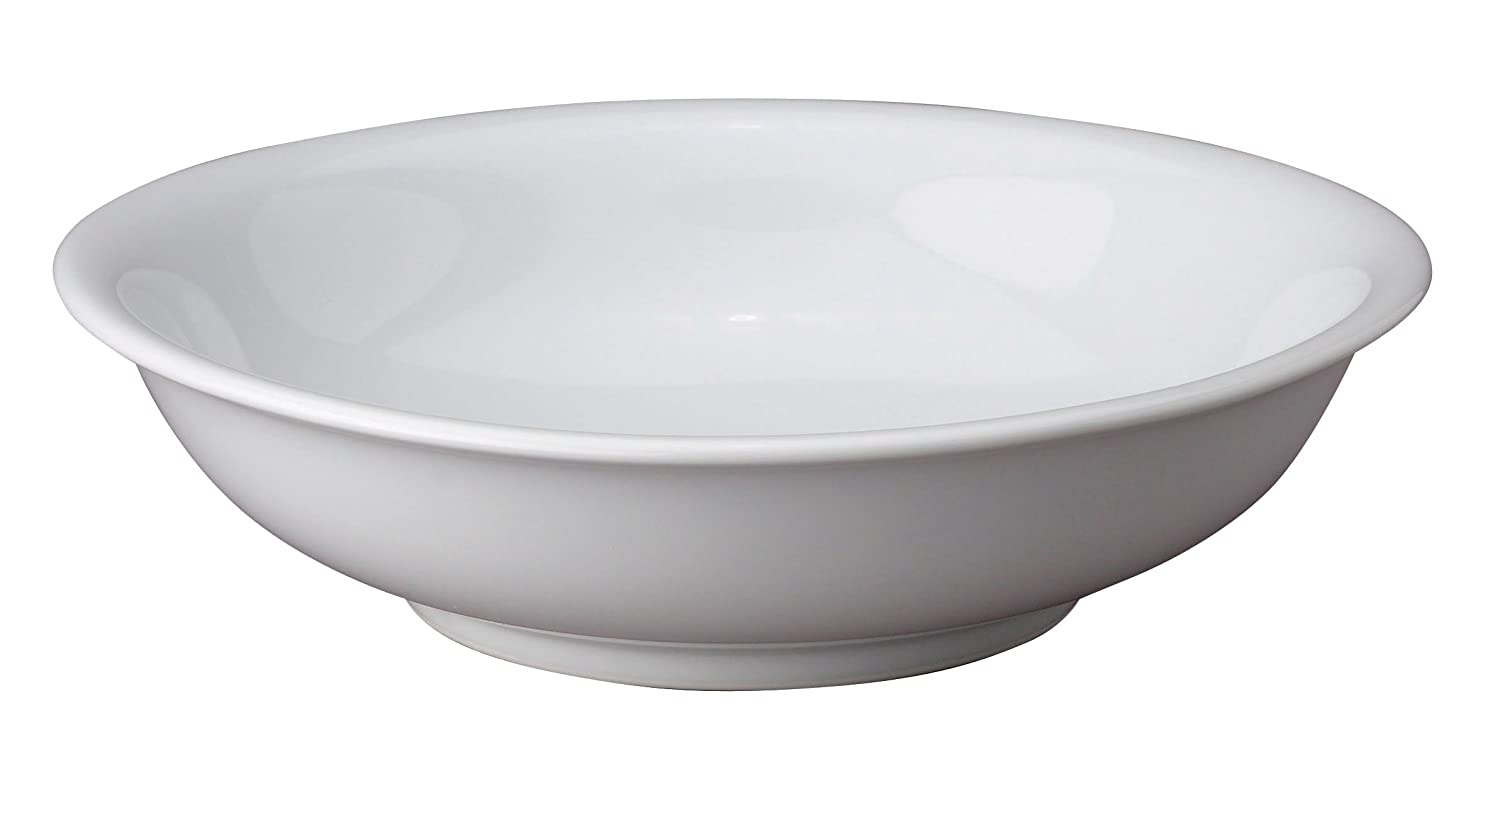 HIC Brands that Cook 9-1/2-Inch CafWhite Porcelain Vegetable Bowl 78015